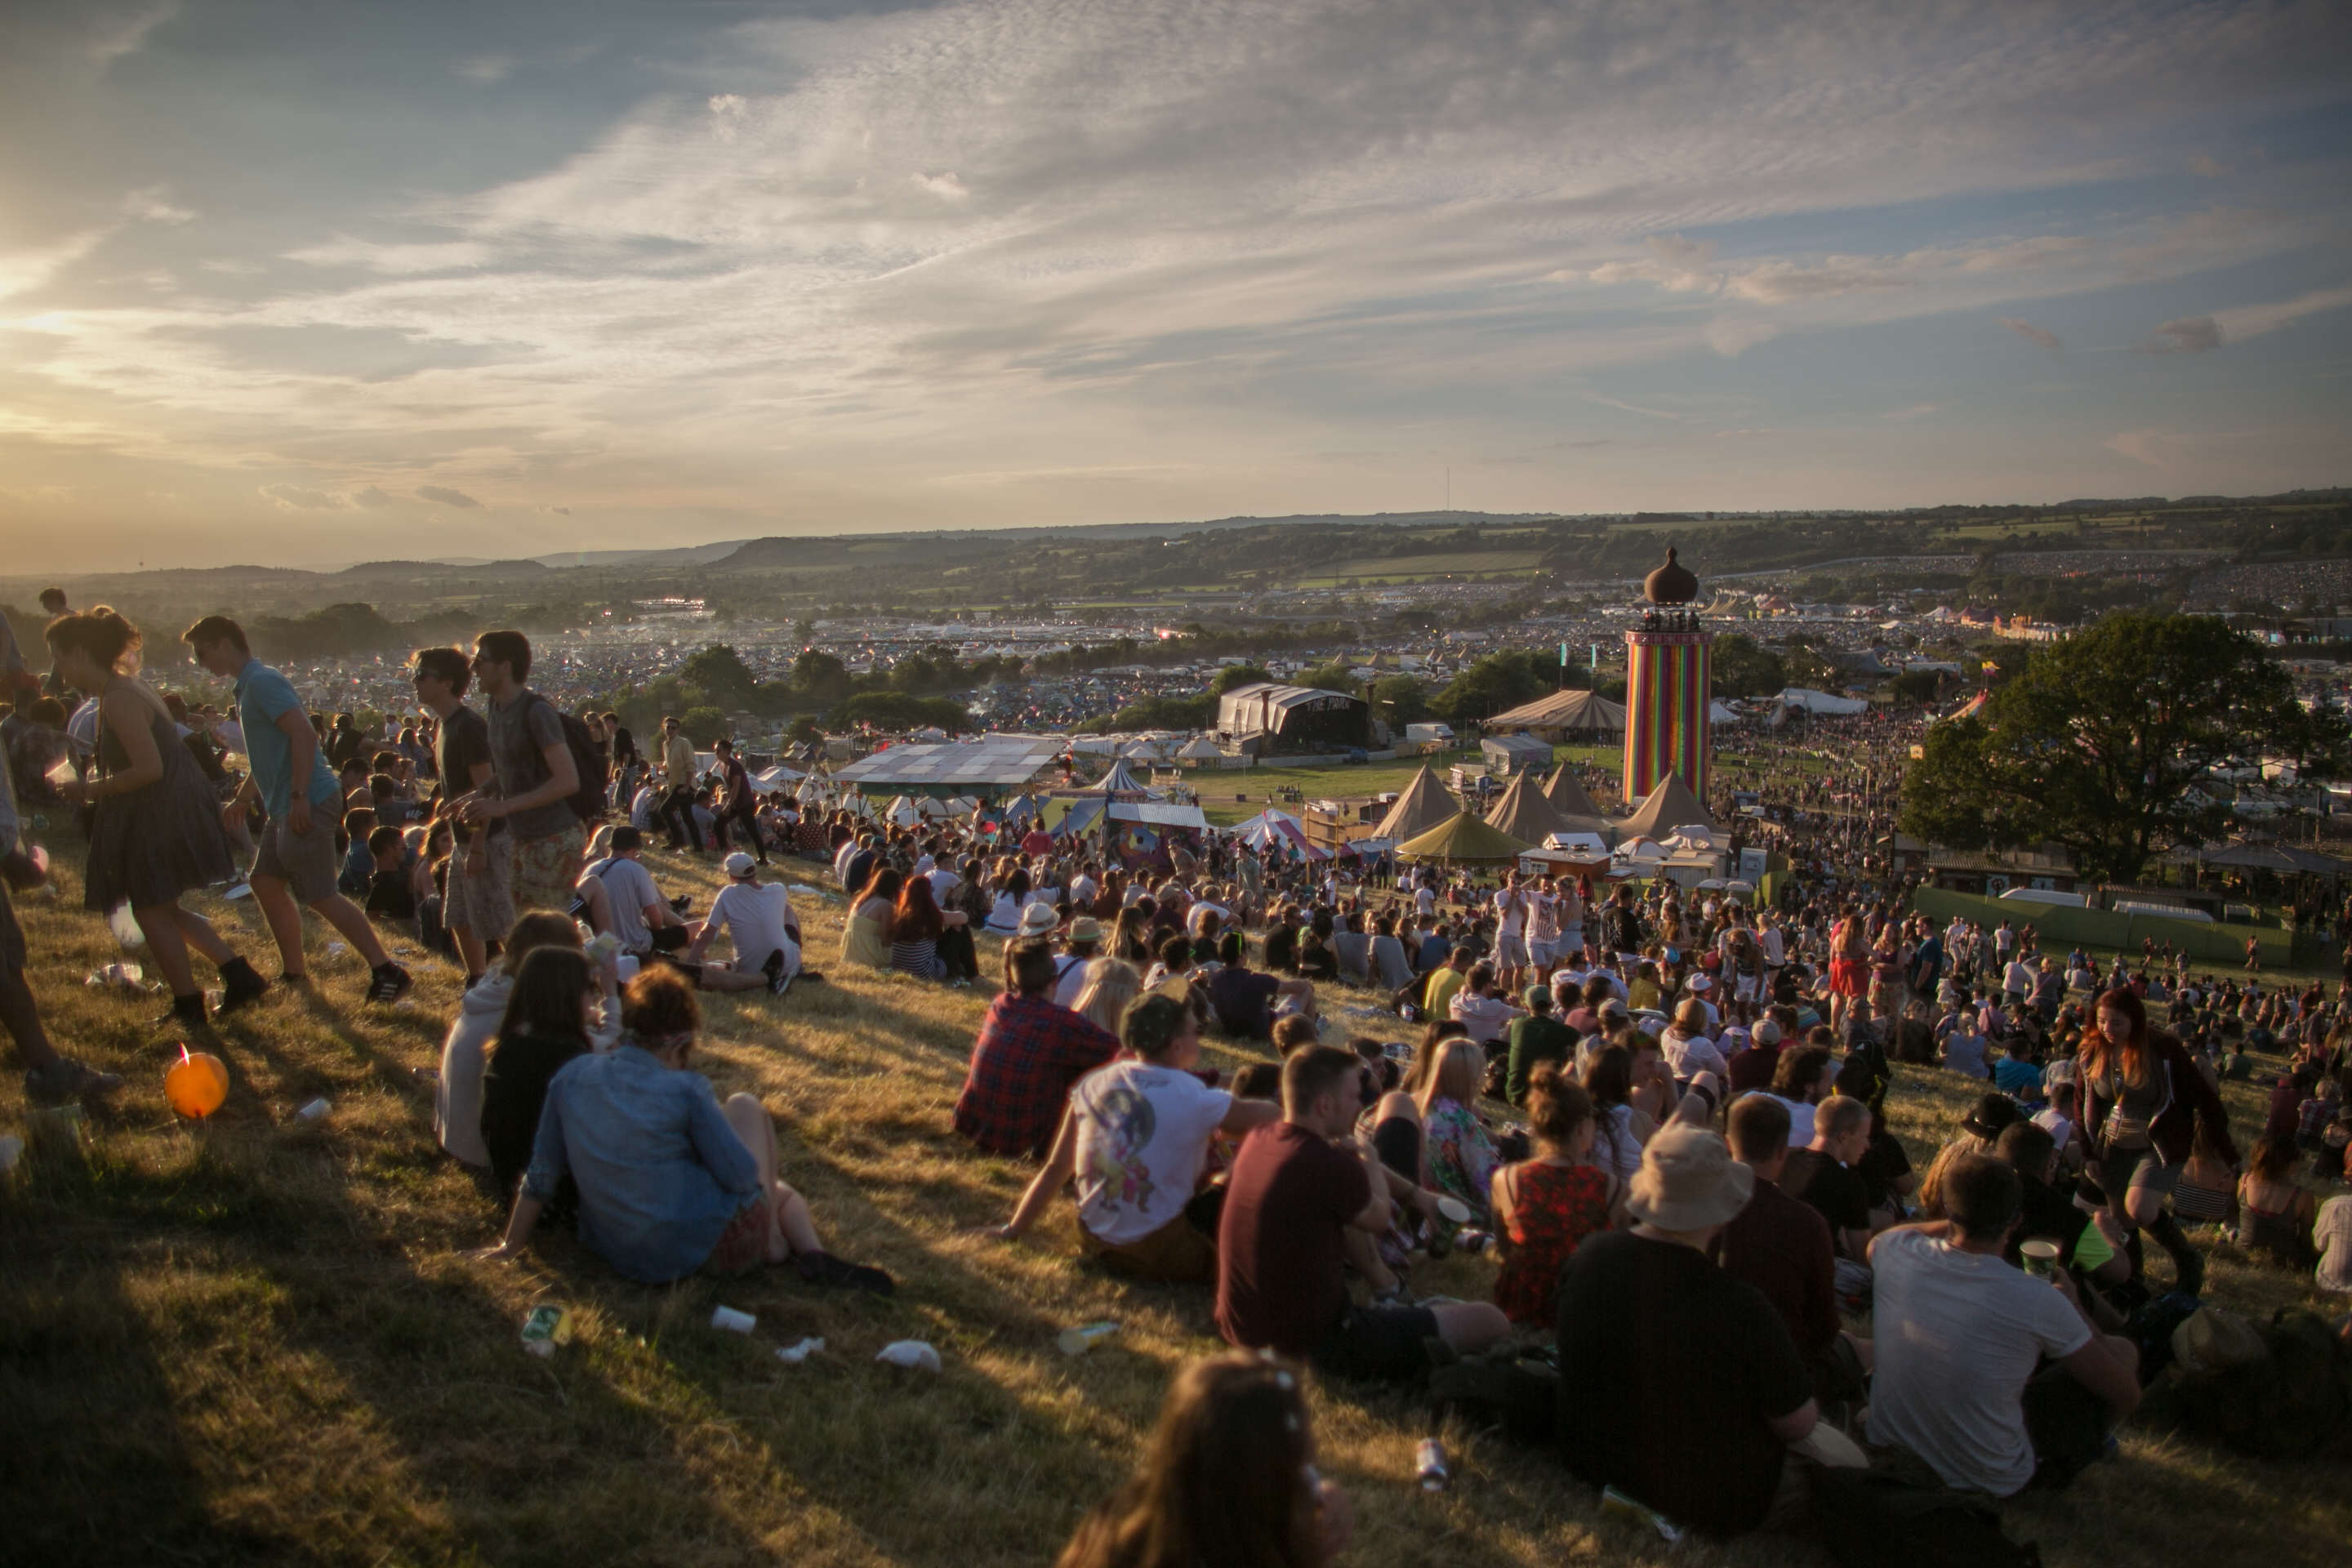 Man Dies After Catching Fire At Glastonbury glastonbury1